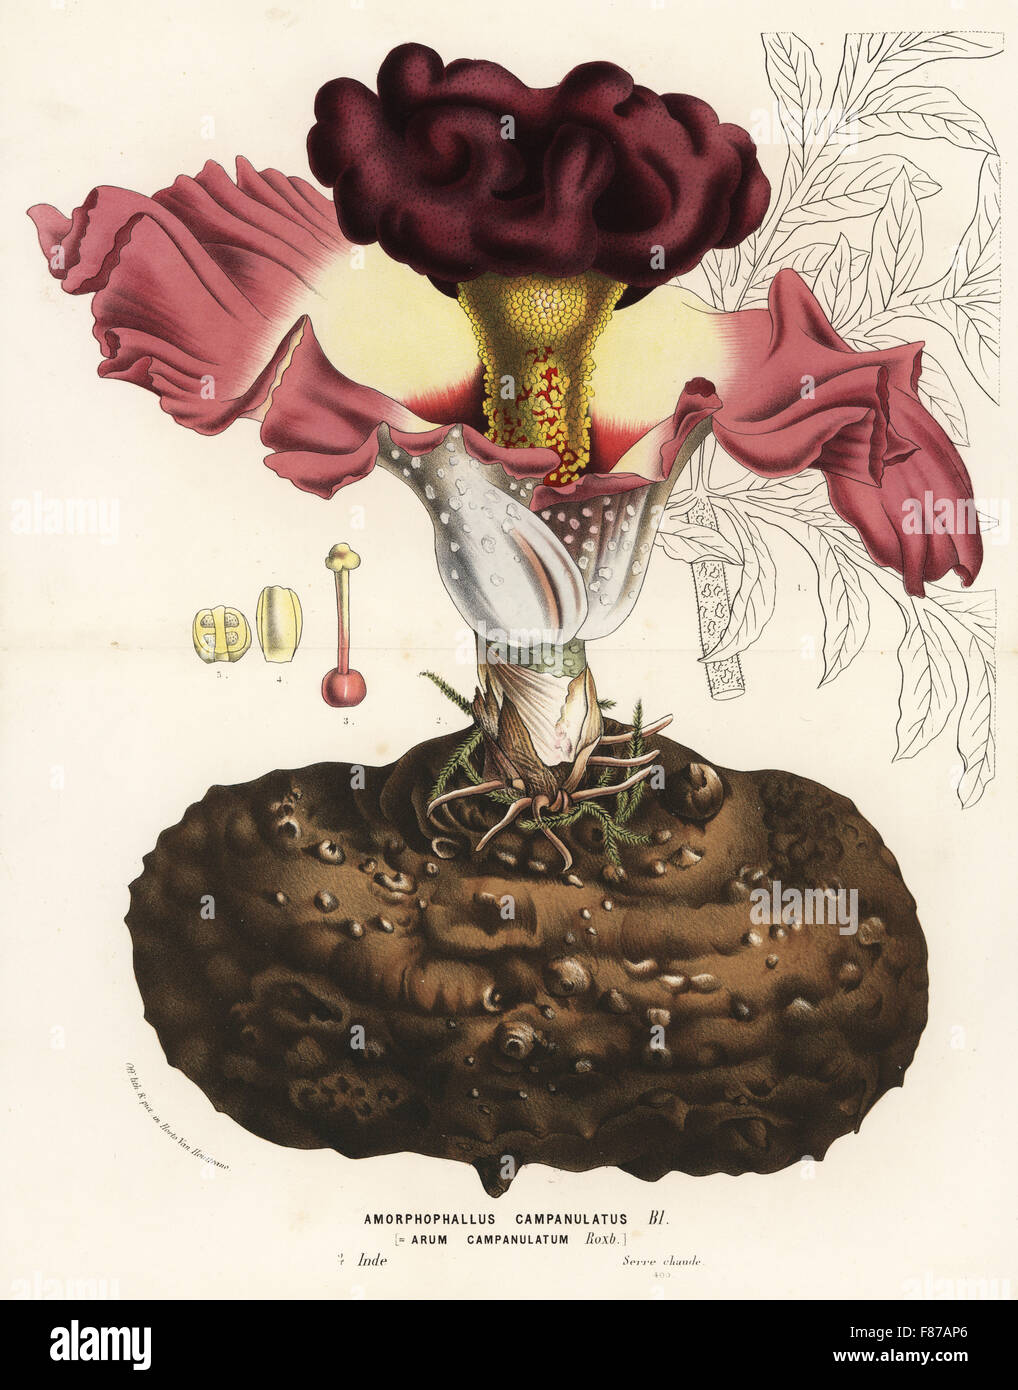 Elephant foot yam or whitespot giant arum, Amorphophallus campanulatus. Handcoloured lithograph from Louis van Houtte Stock Photo